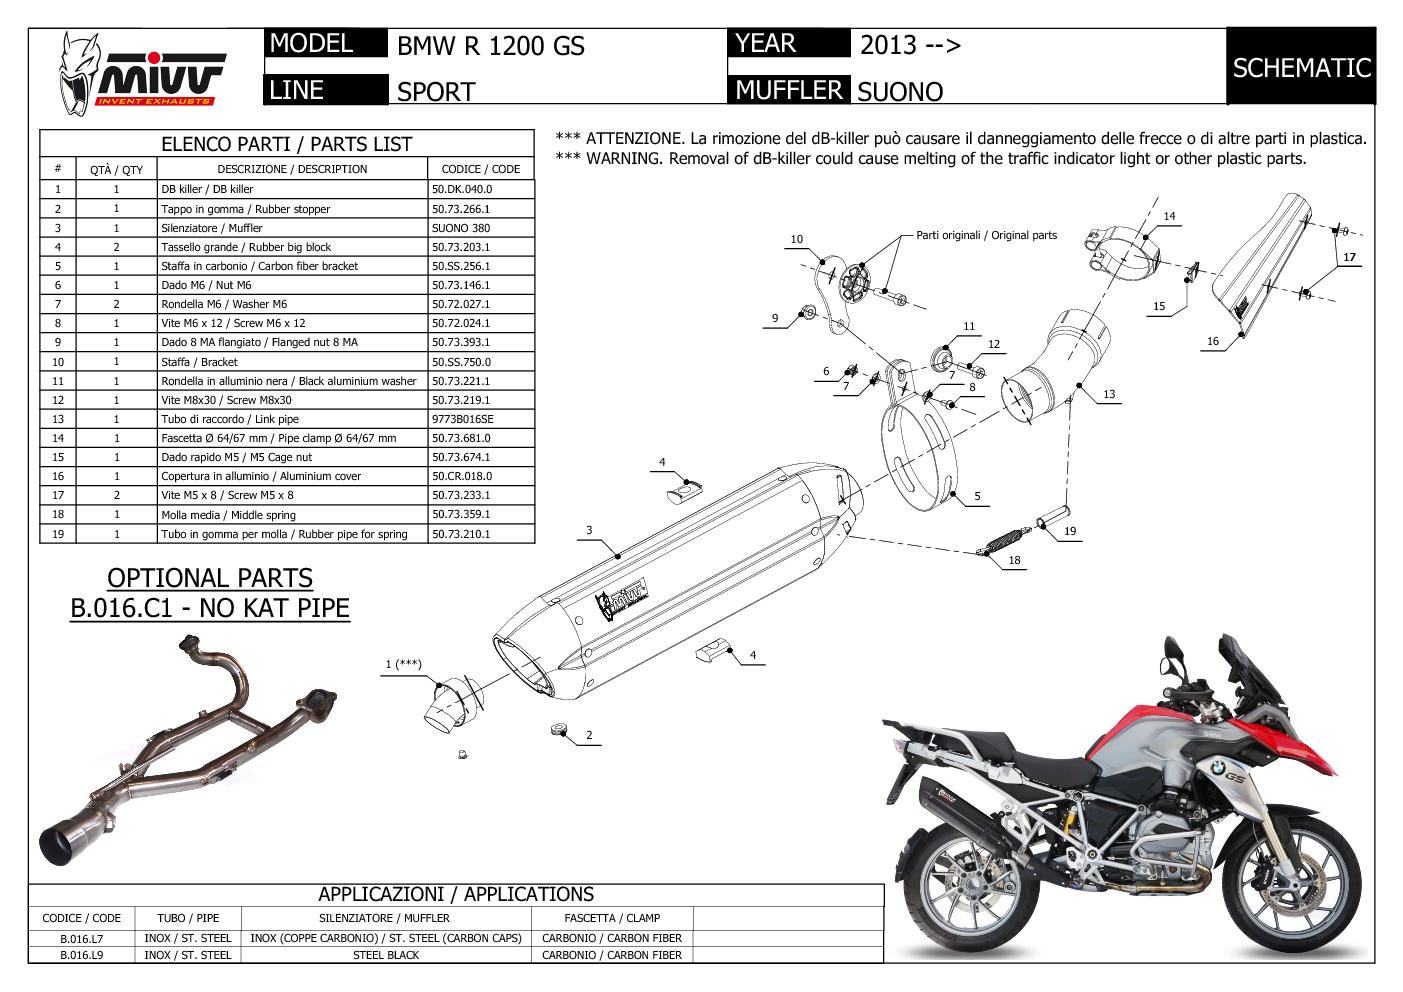 B.016.L7 Mivv Exhaust Muffler Suono Stainless Steel for Bmw R 1200 Gs 2013 > 2020